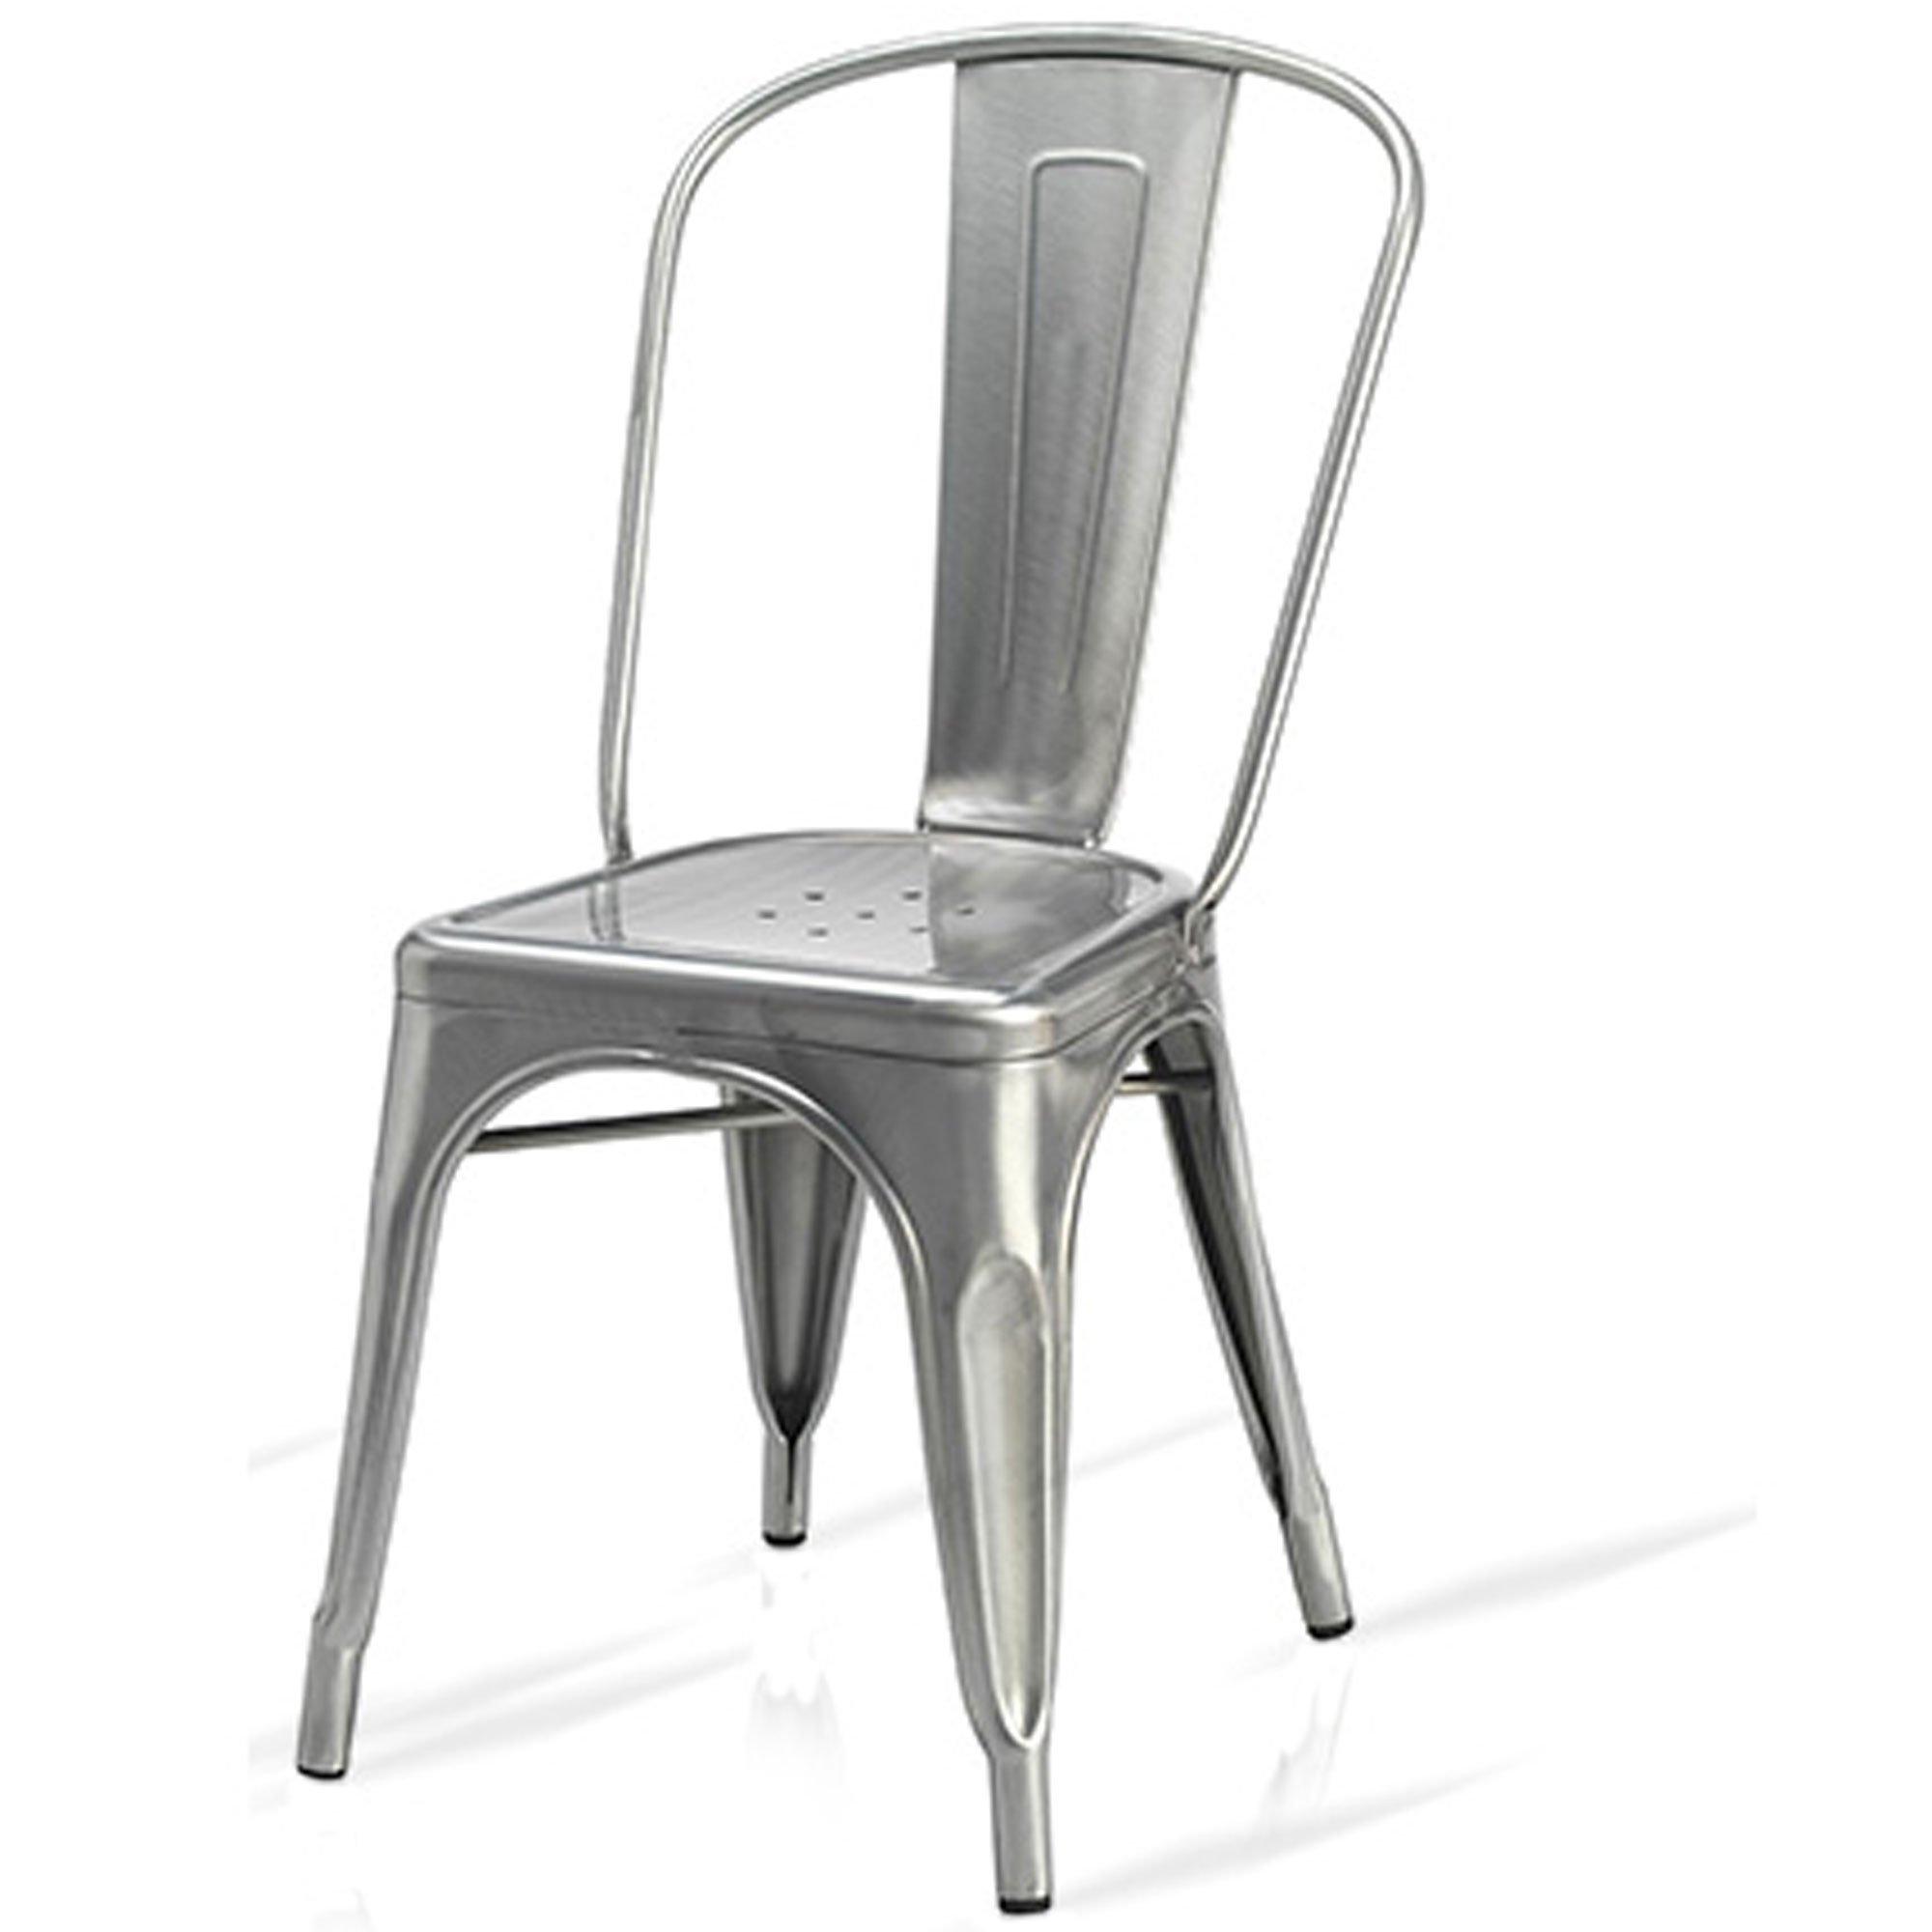 Household Discount New Tolix Style Silver Metal Bistro Chairs Brushed Steel  With Clear Lacquer. Pauchard Retro Cafe Bar.